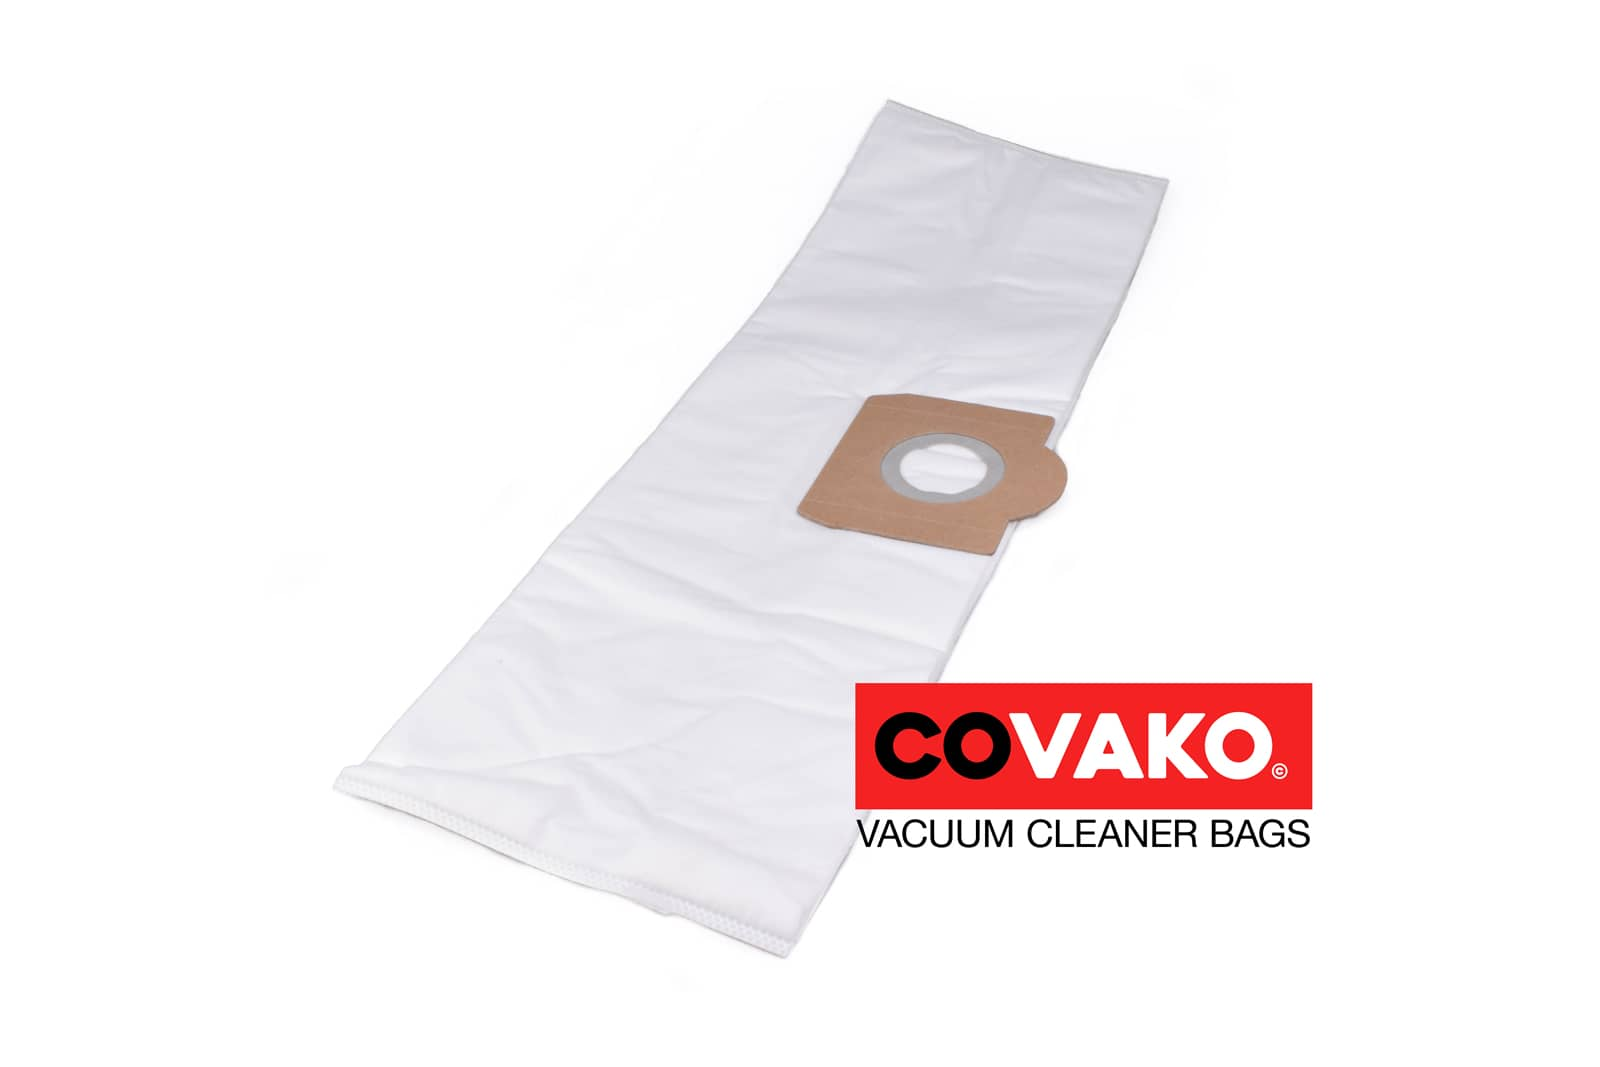 Fakir IC 215 / Synthesis - Fakir vacuum cleaner bags